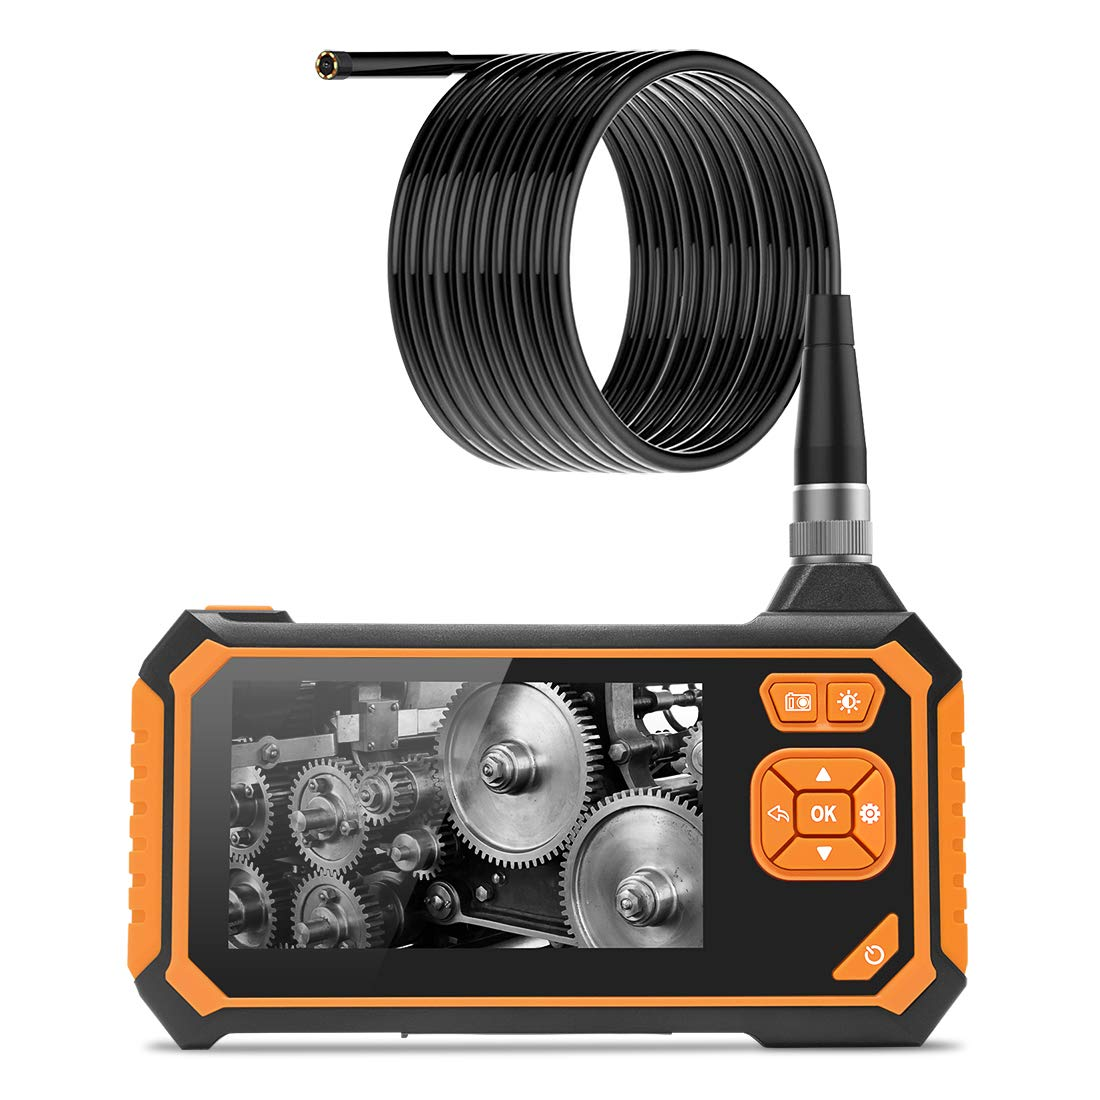 Wisamic Borescope Inspection Camera with Light: 1080P HD Digital Borescope Waterproof Video Snake Indoscope Camera with 1.6-198 inch Focus Distance 4.3inch LCD, 3M/9.8FT